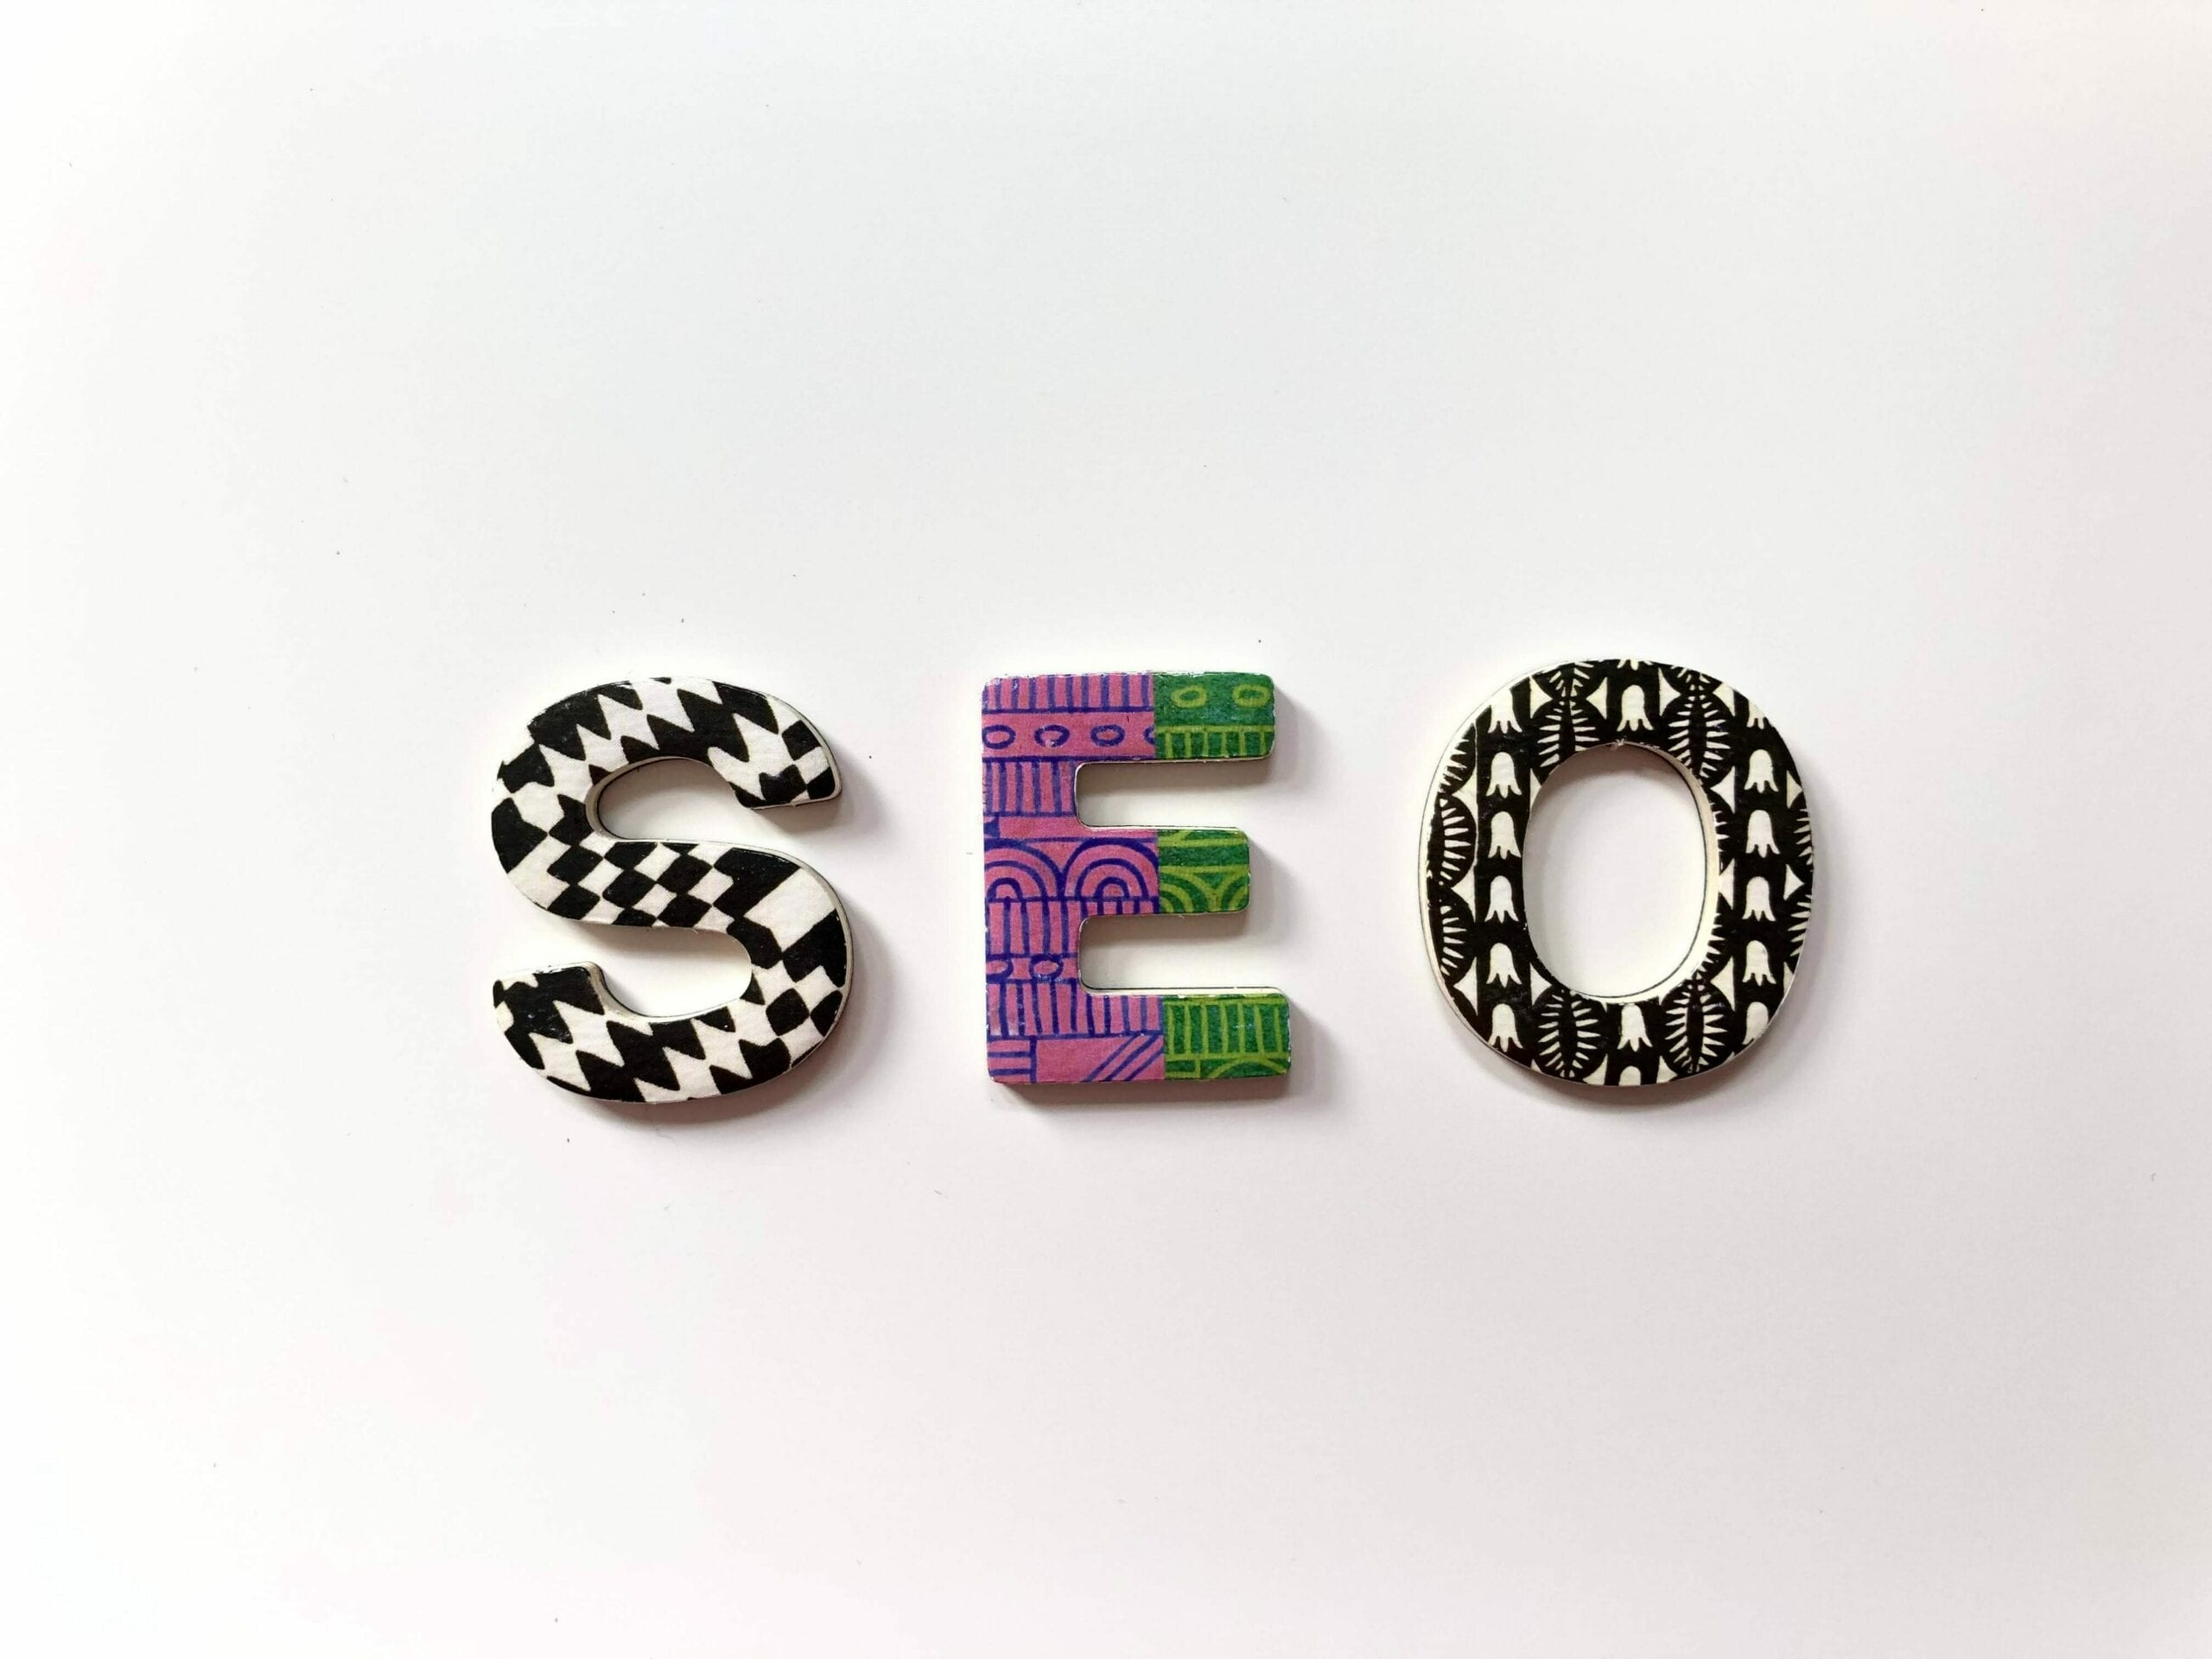 The letters SEO